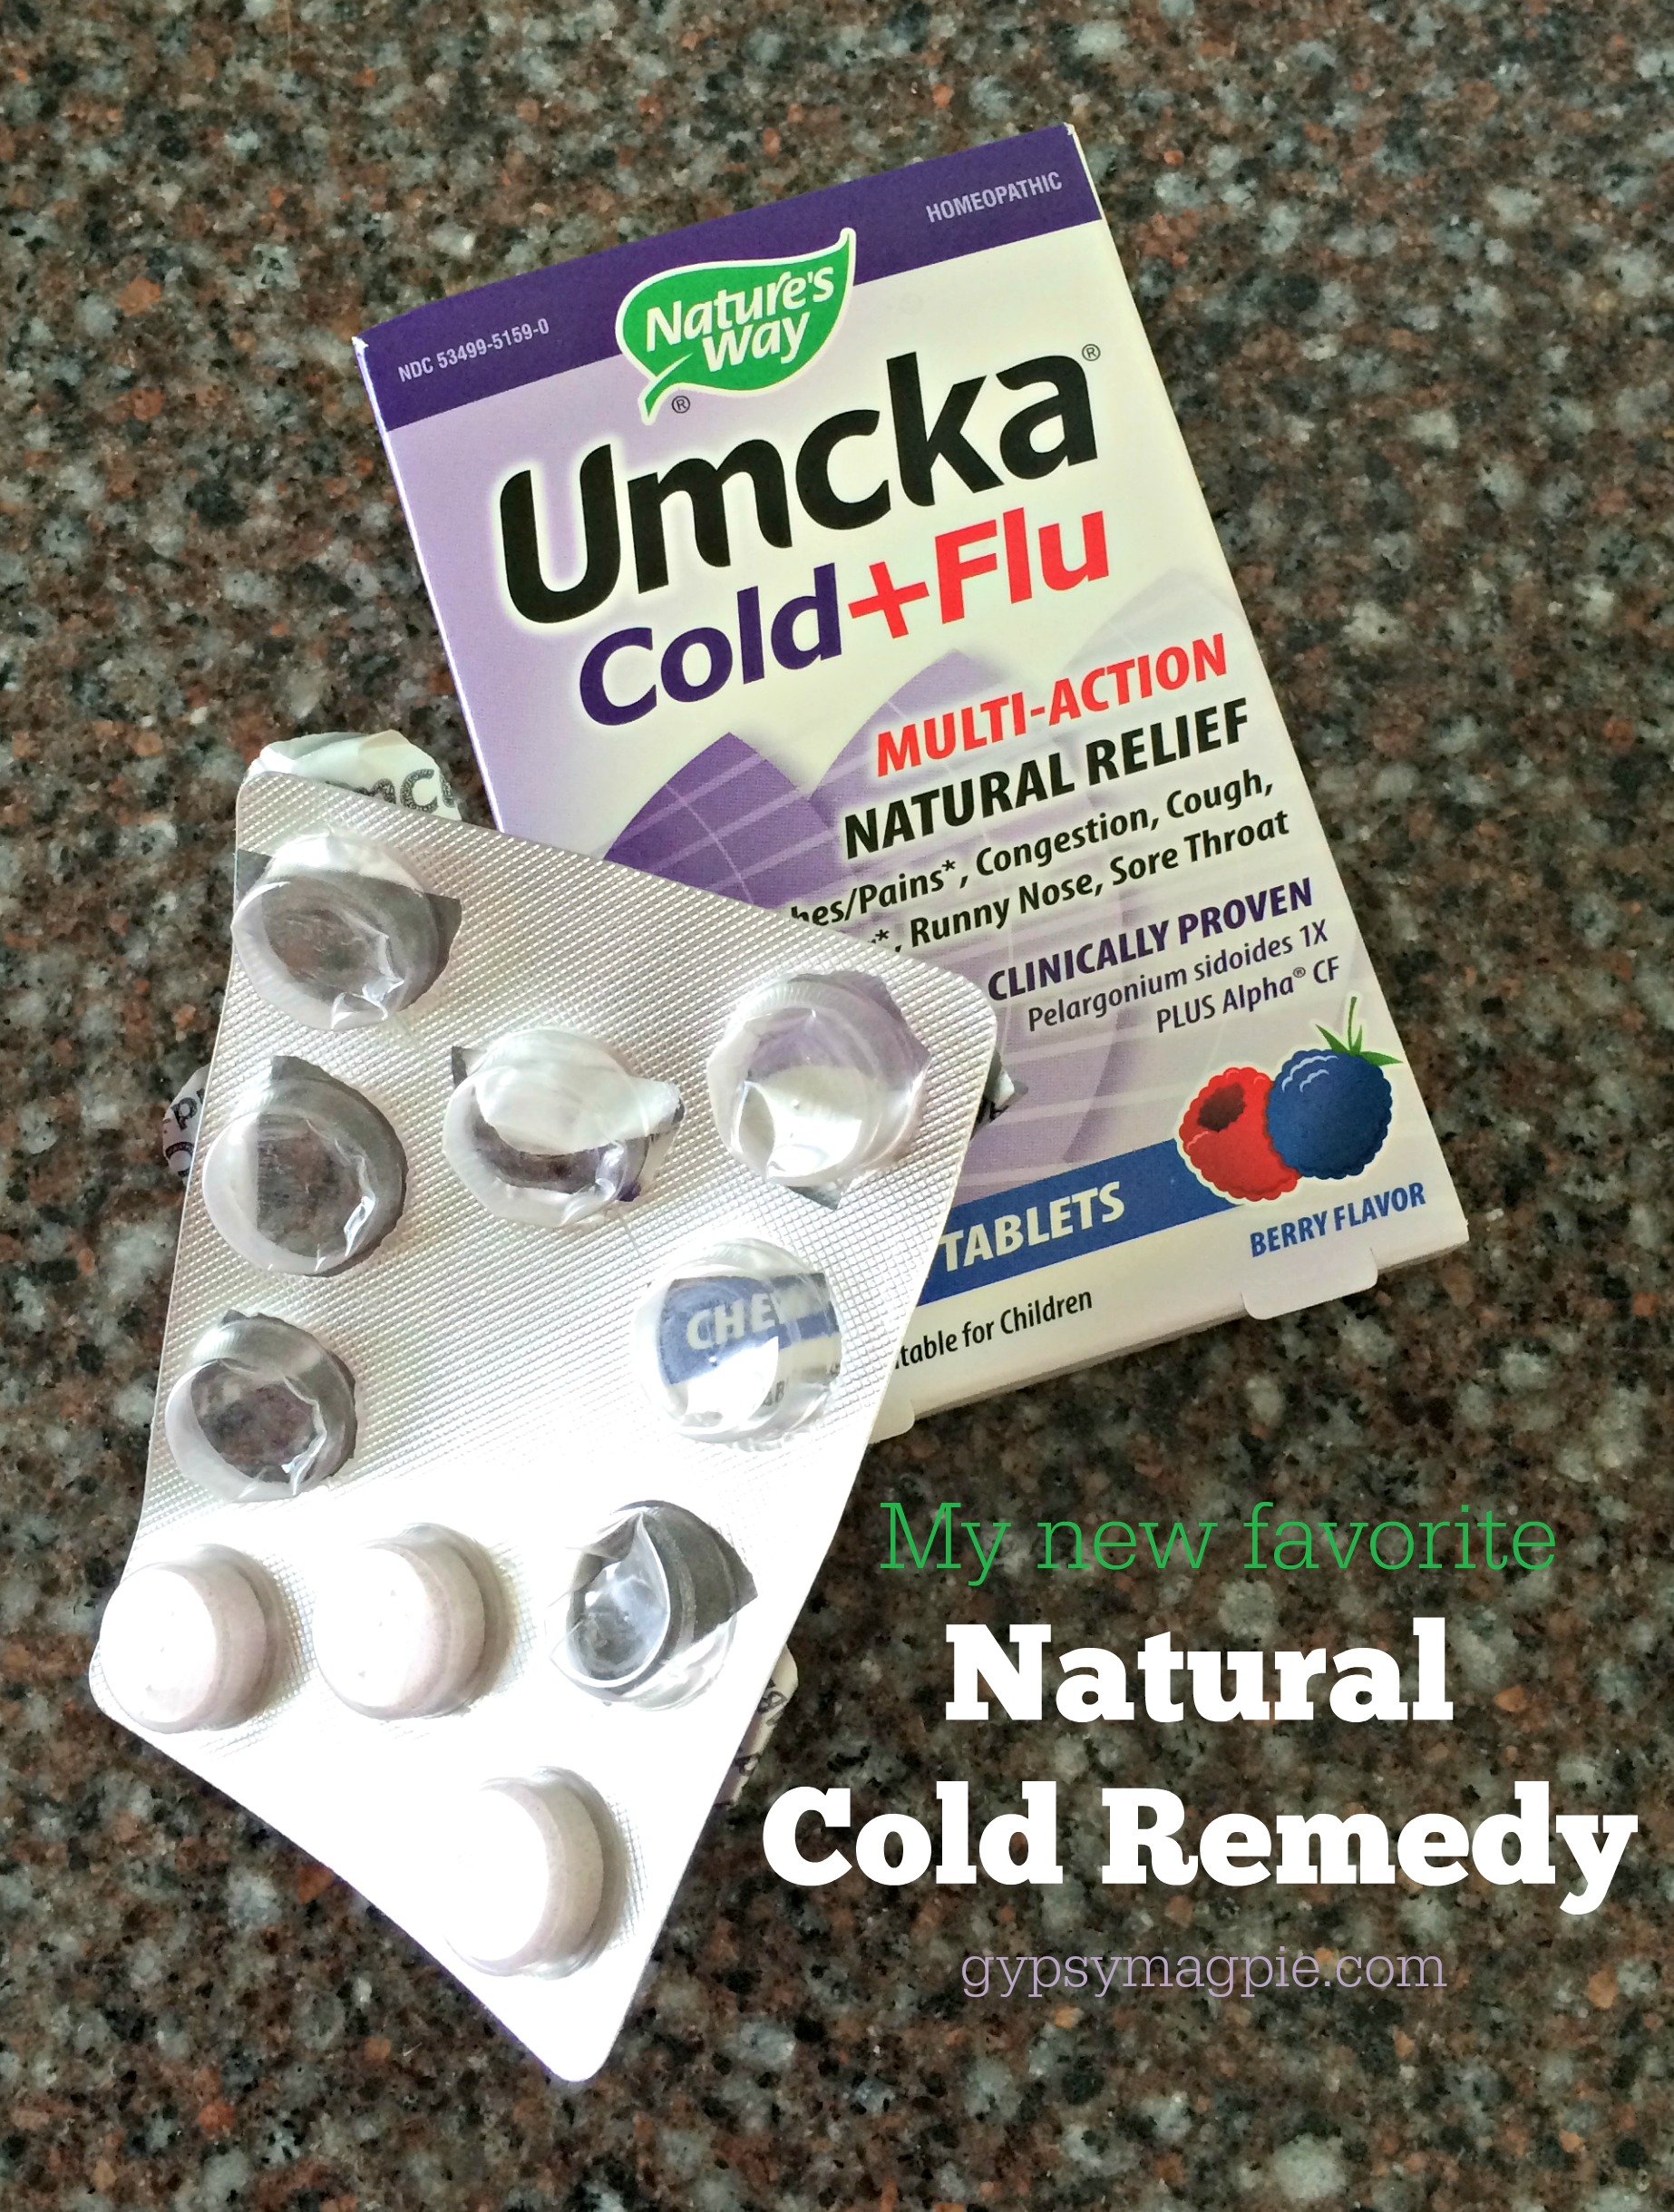 Umcka, my new favorite natural cold/flu remedy {Gypsy Magpie}